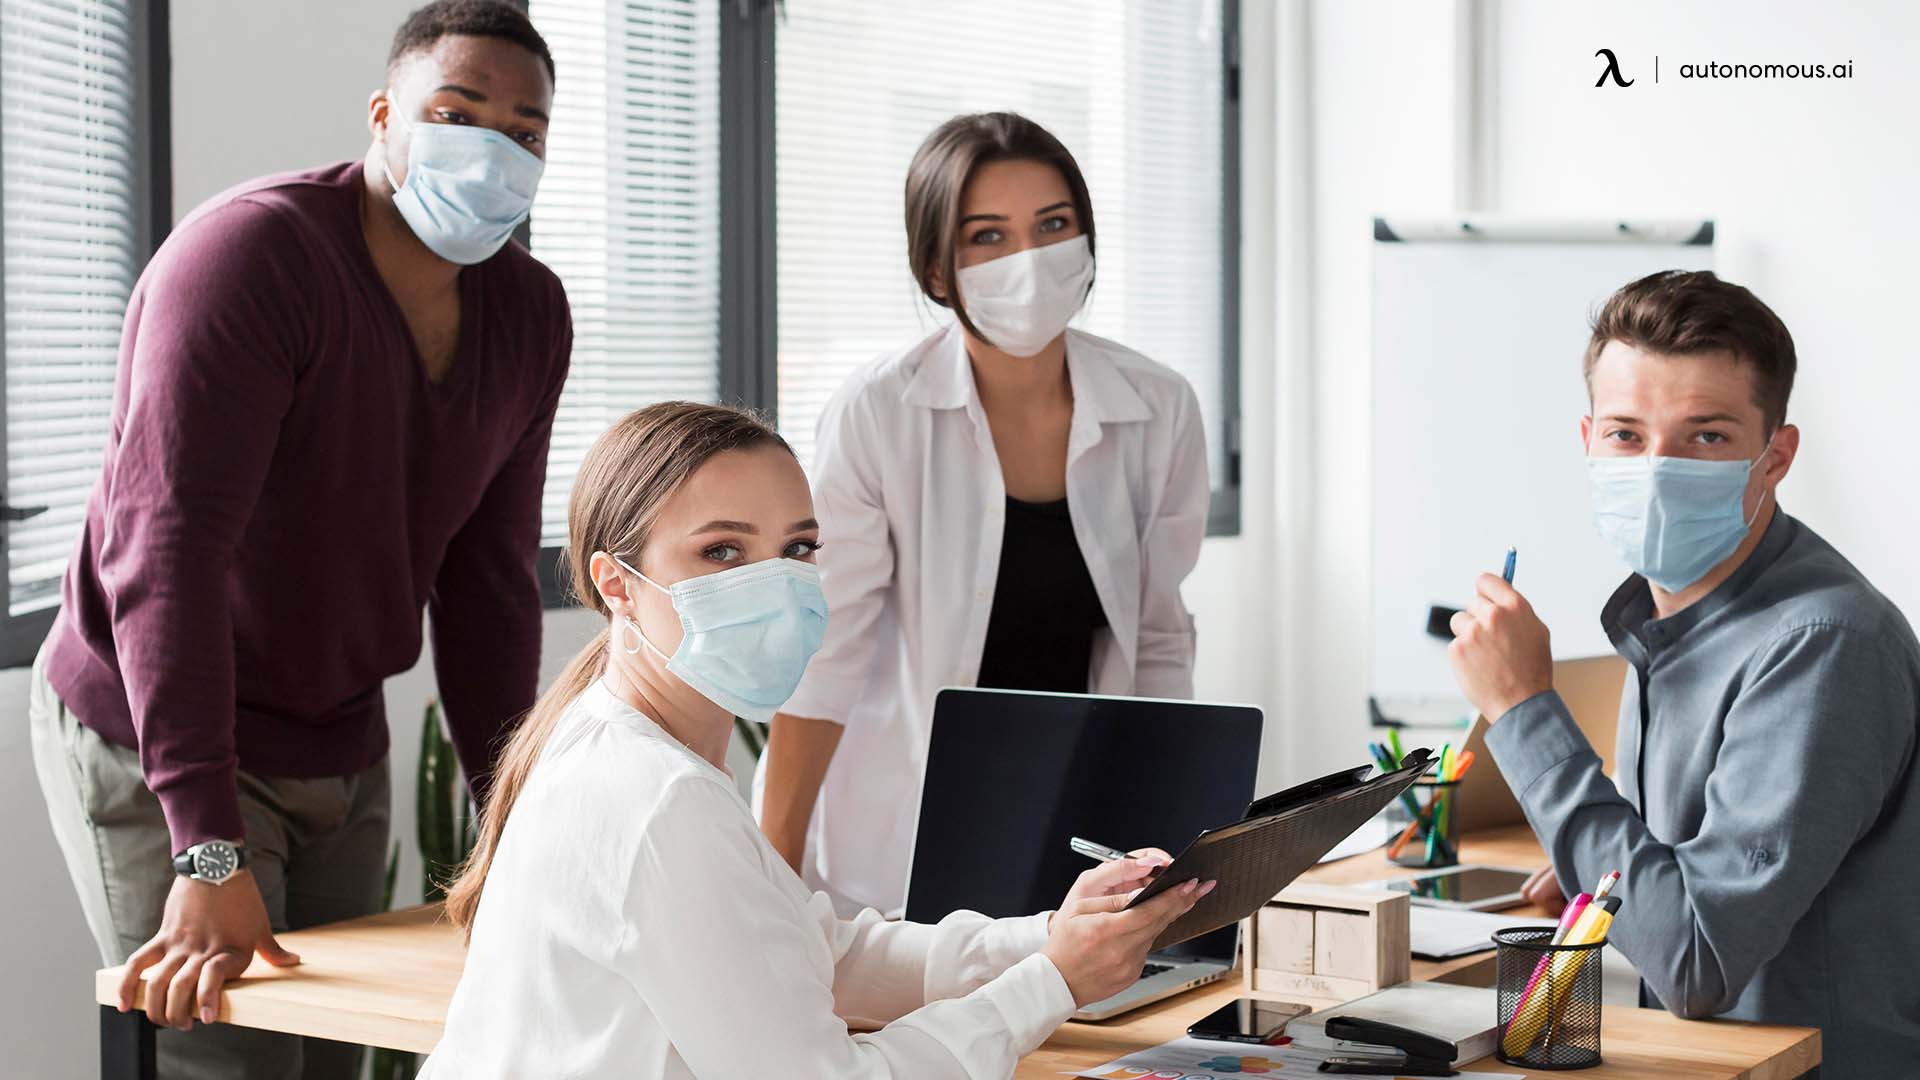 Why The Need for Hybrid Work Model in The Post-Pandemic Era?